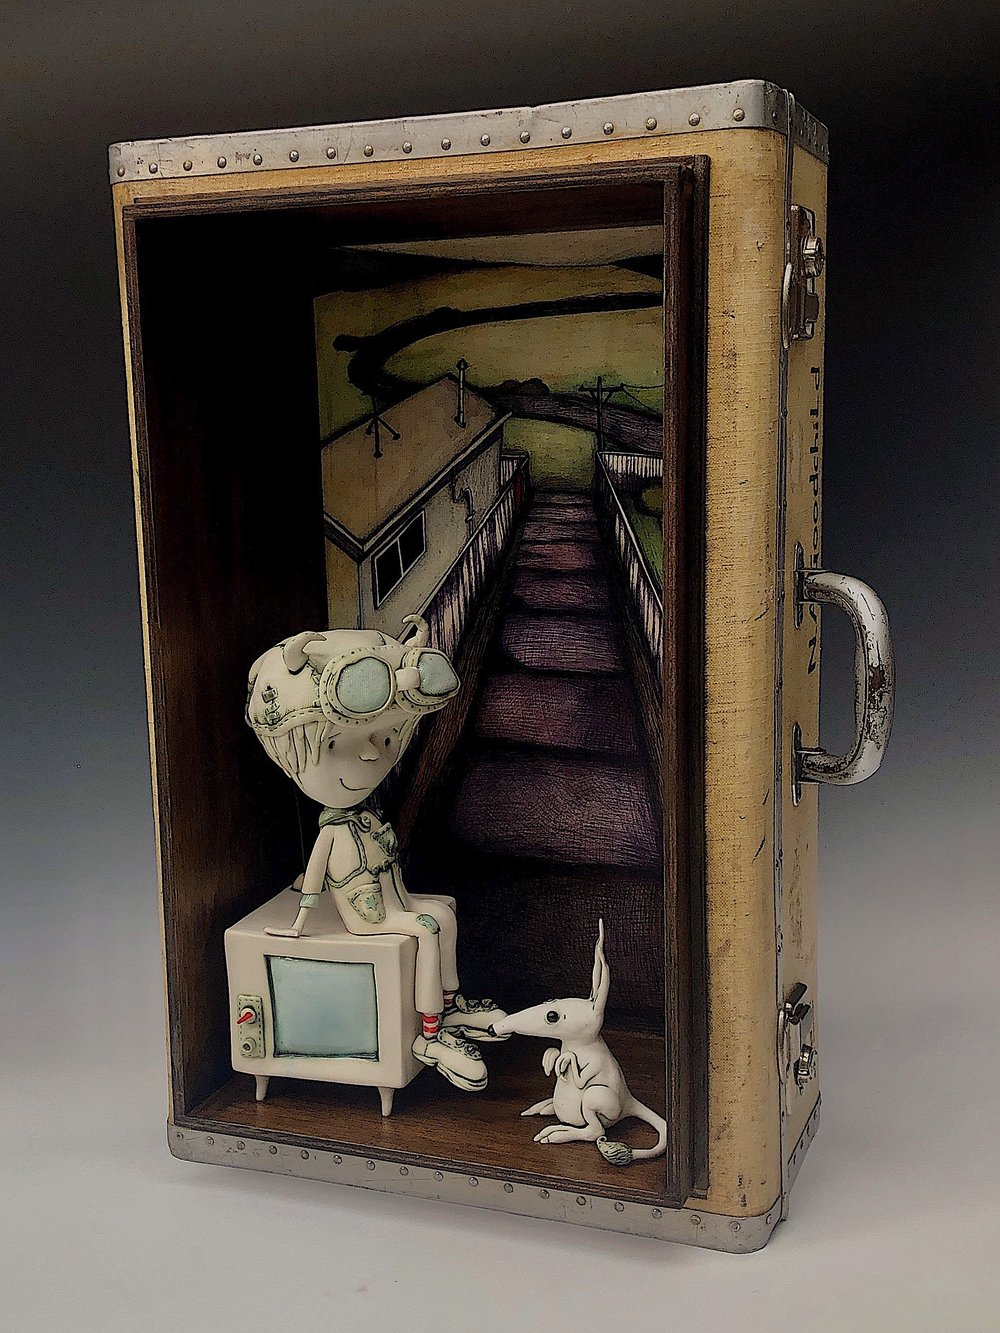 'The road no one seems to take any more'' porcelain, illustration and vintage suitcase.w34cm x 67cm x 27cm